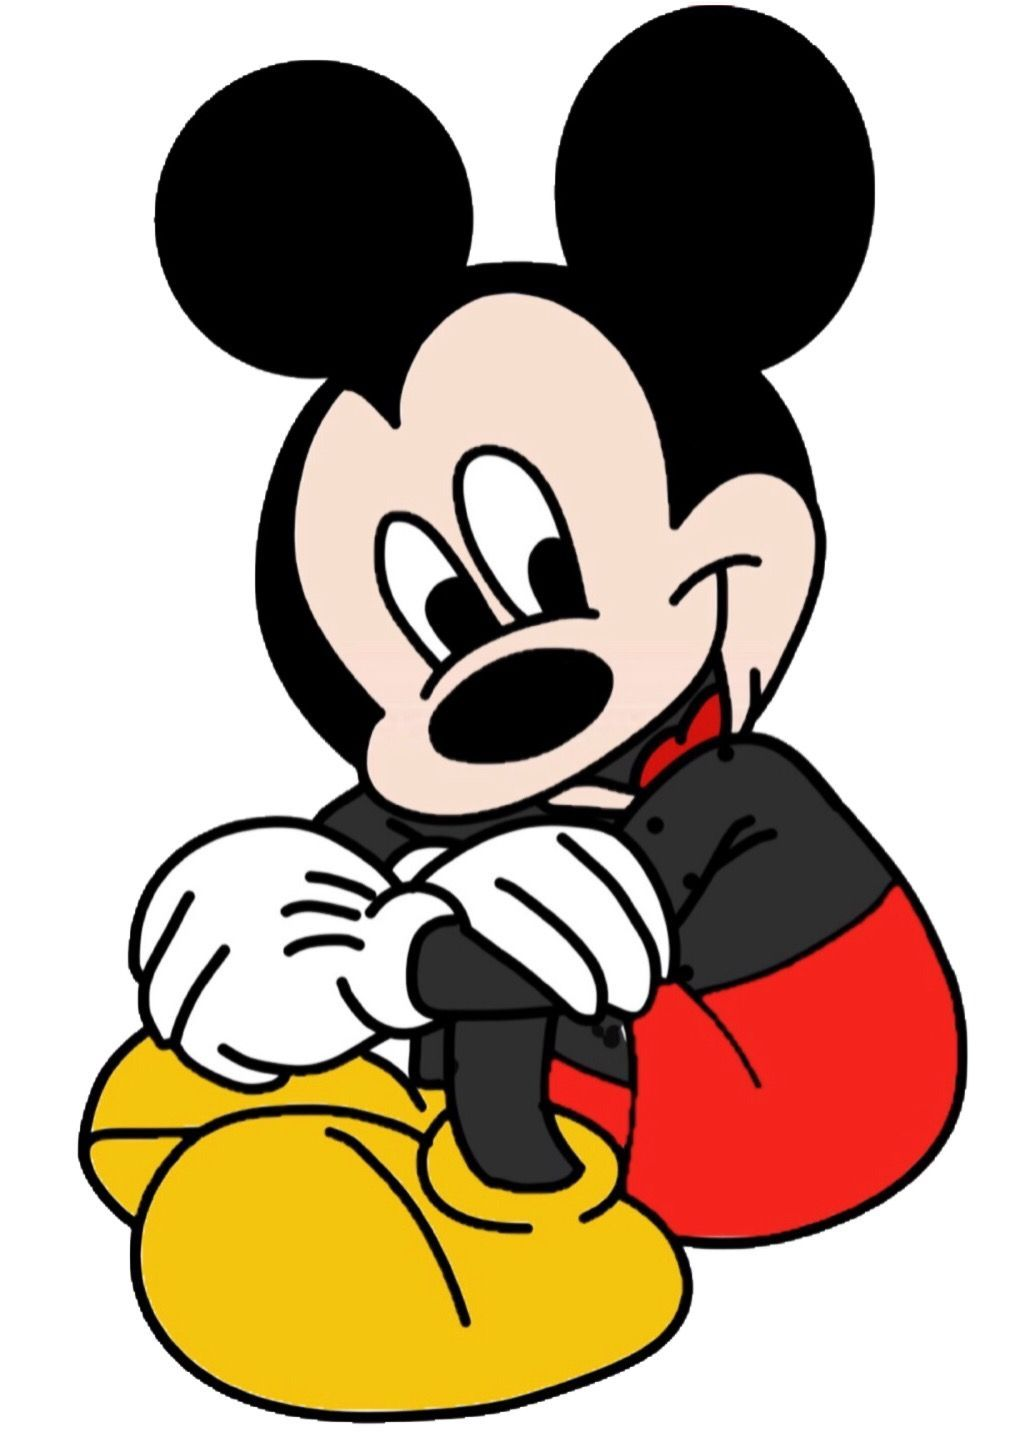 Mickey Mouse Pictures Mickey Mickey Minnie Mickey Minnie Mouse Disney Mickey Mickey Mouse Pictures Mickey Mouse Wallpaper Mickey Mouse Background